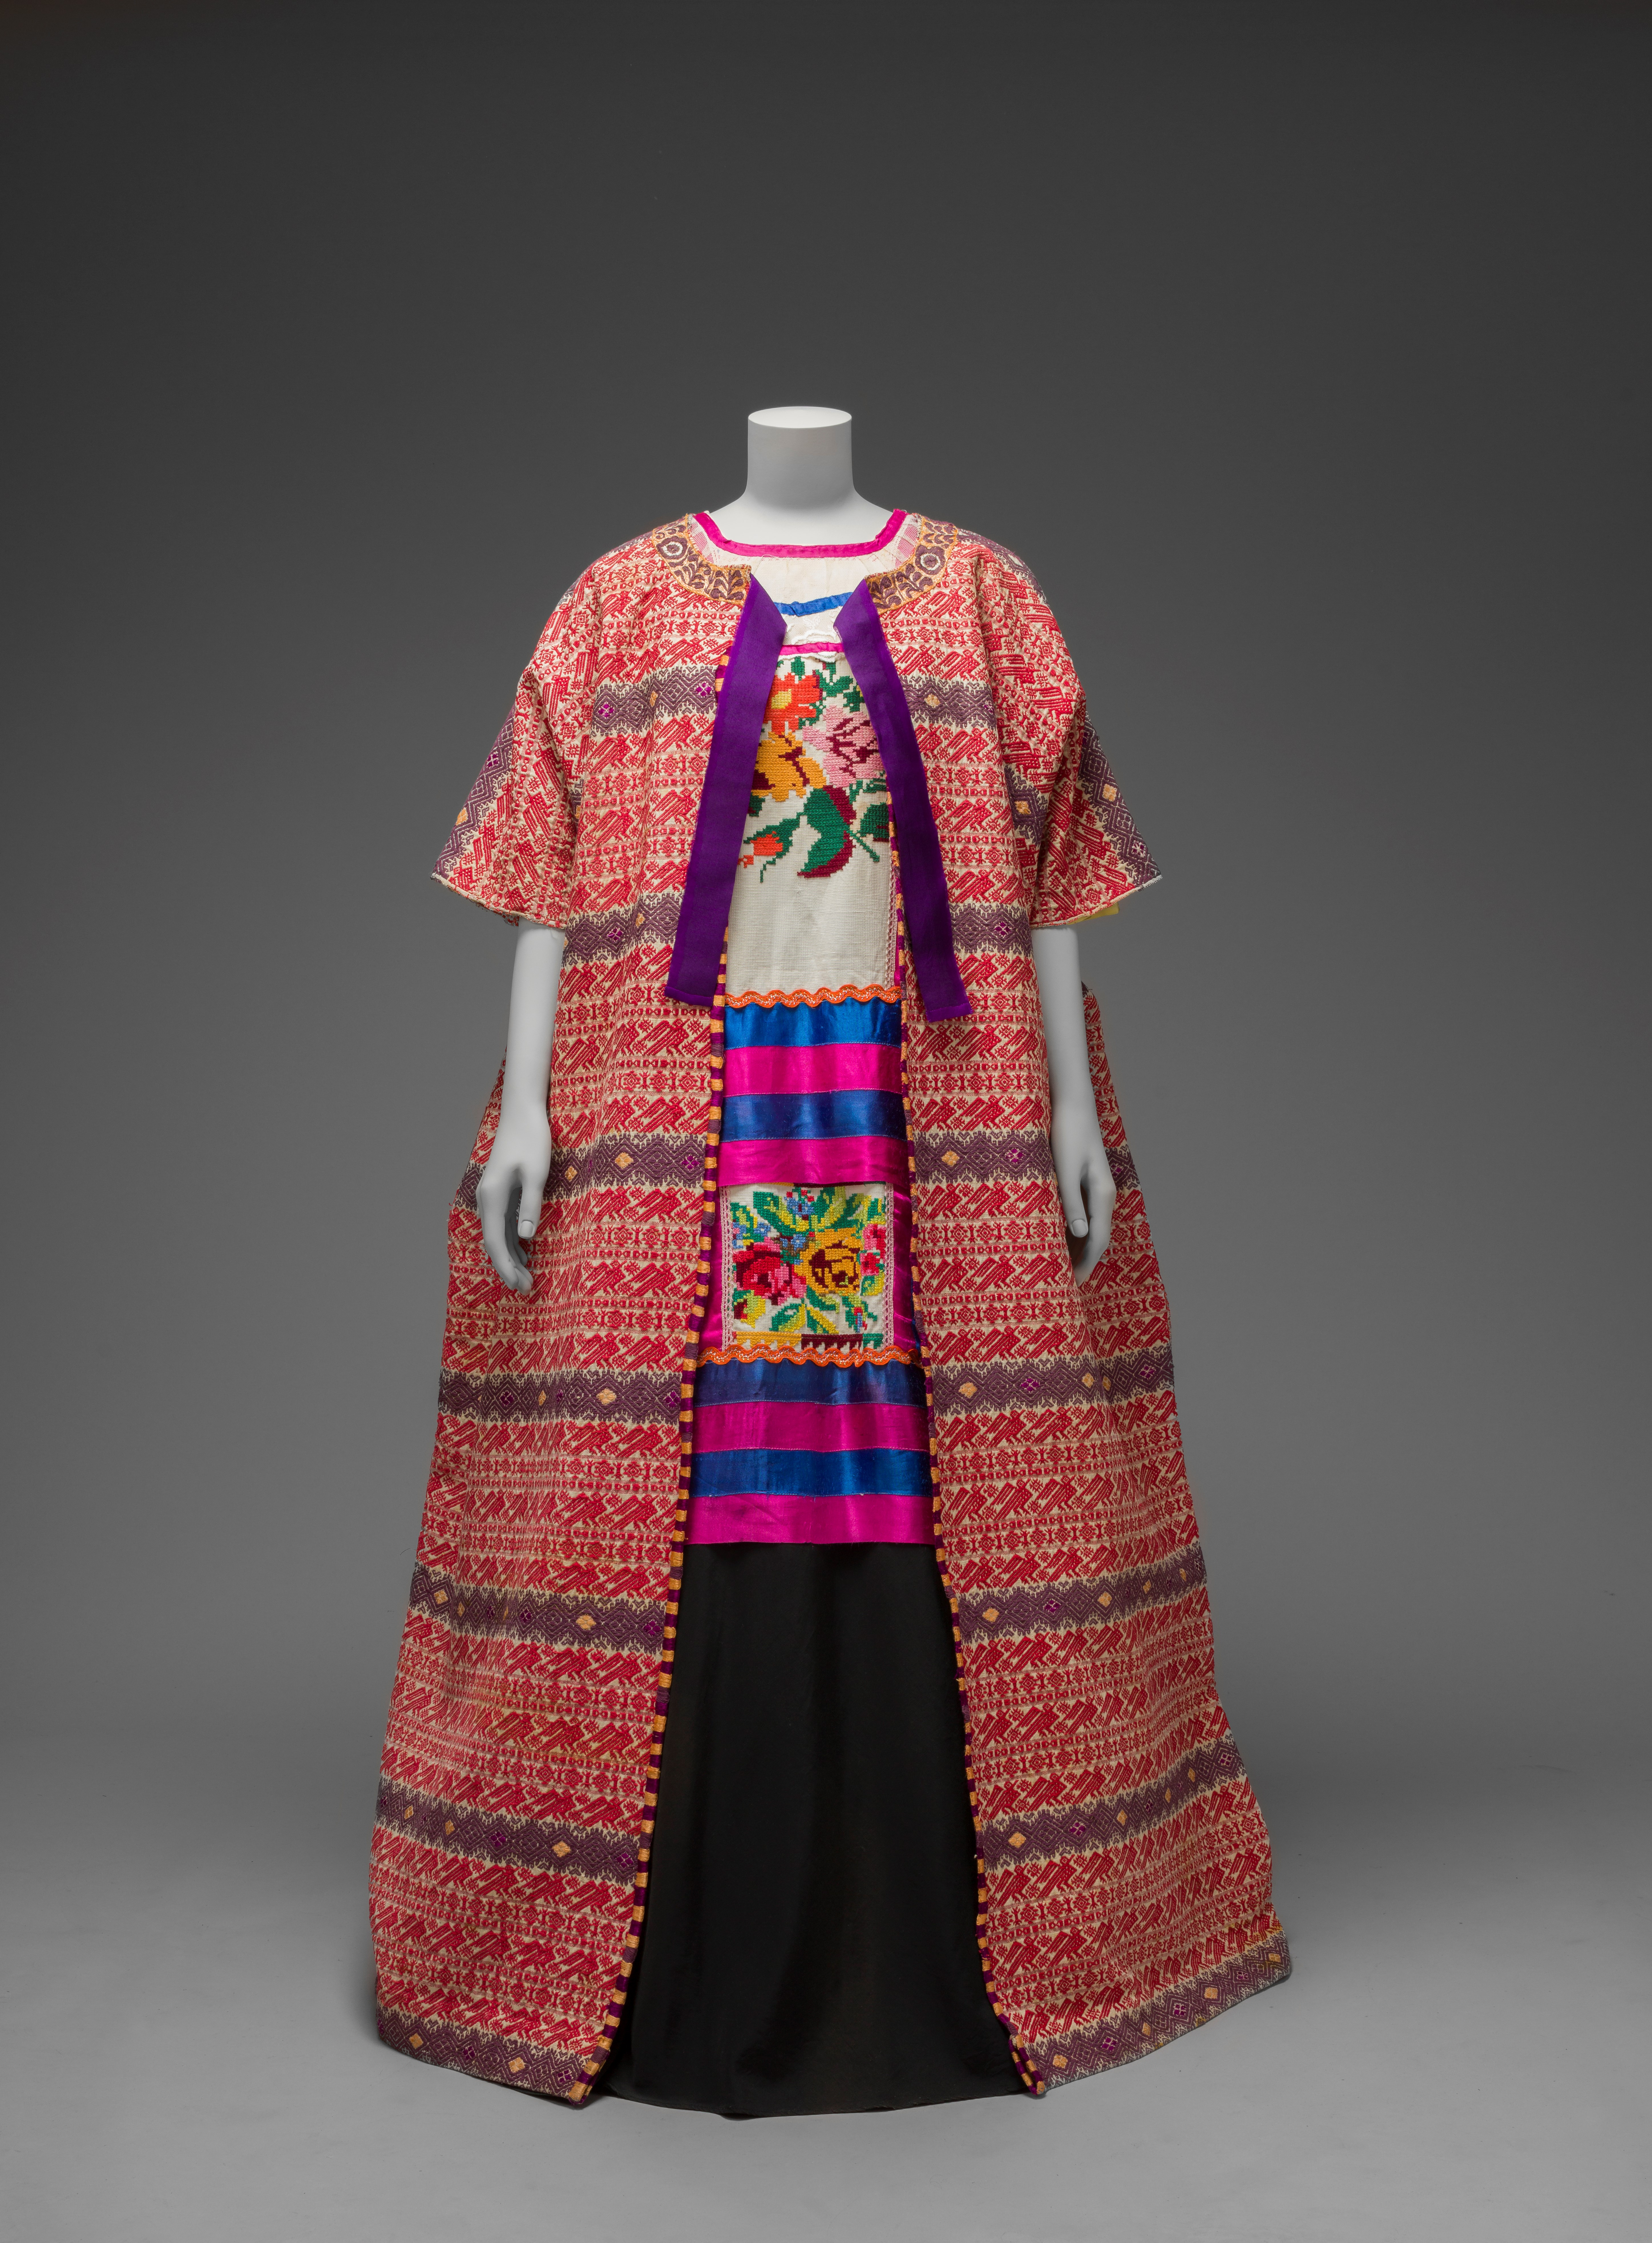 Guatemalan cotton coat (Diego Rivera and Frida Kahlo Archives, Banco de México, Fiduciary of the Trust of the Diego Riviera and Frida Kahlo Museums)